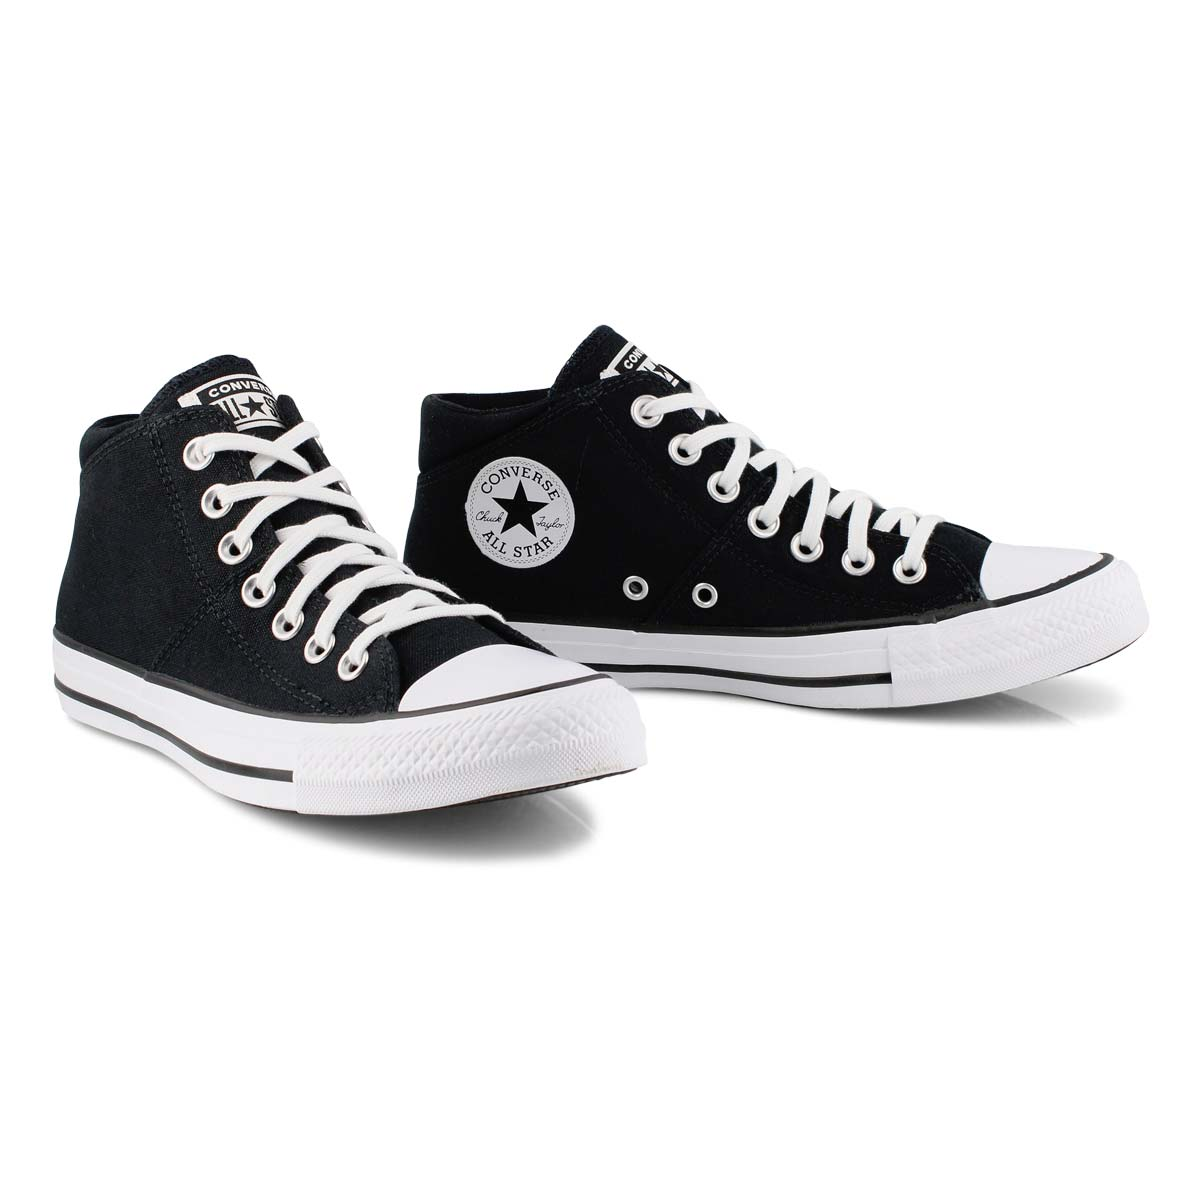 Lds CTAS Madison Mid True Faves blk/wht